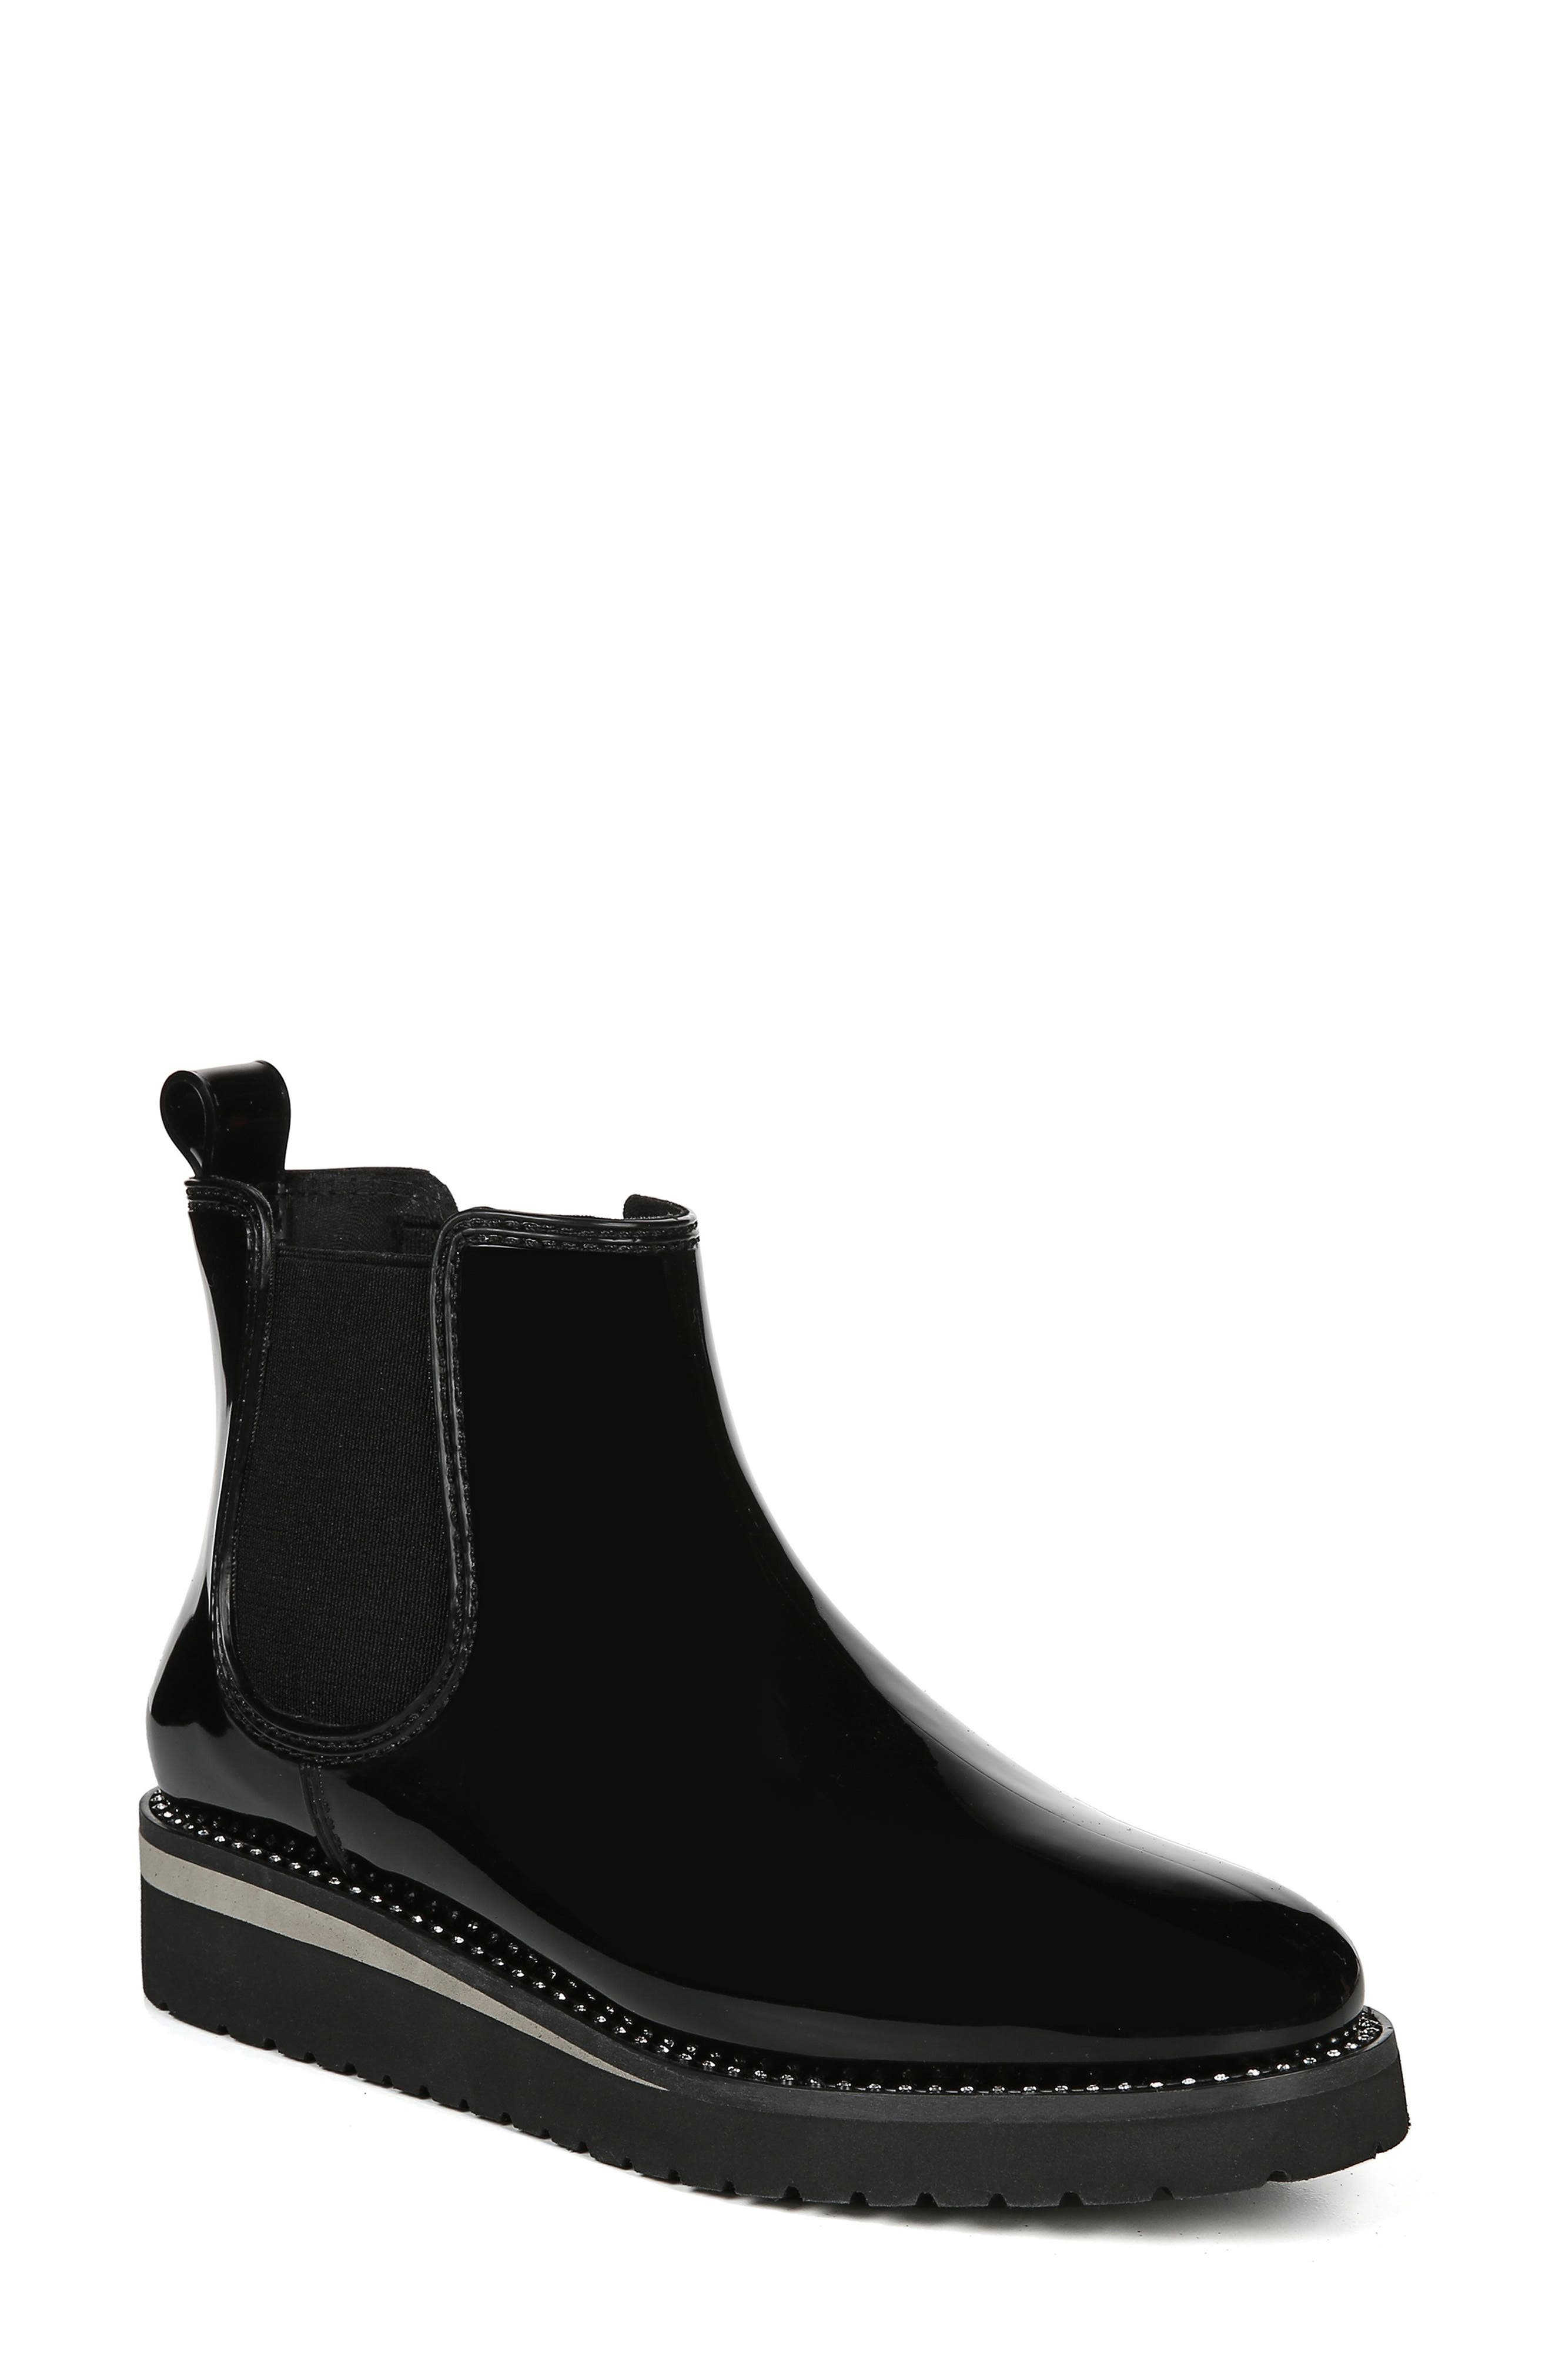 Naturalizer Luna Waterproof Chelsea Boot, Black